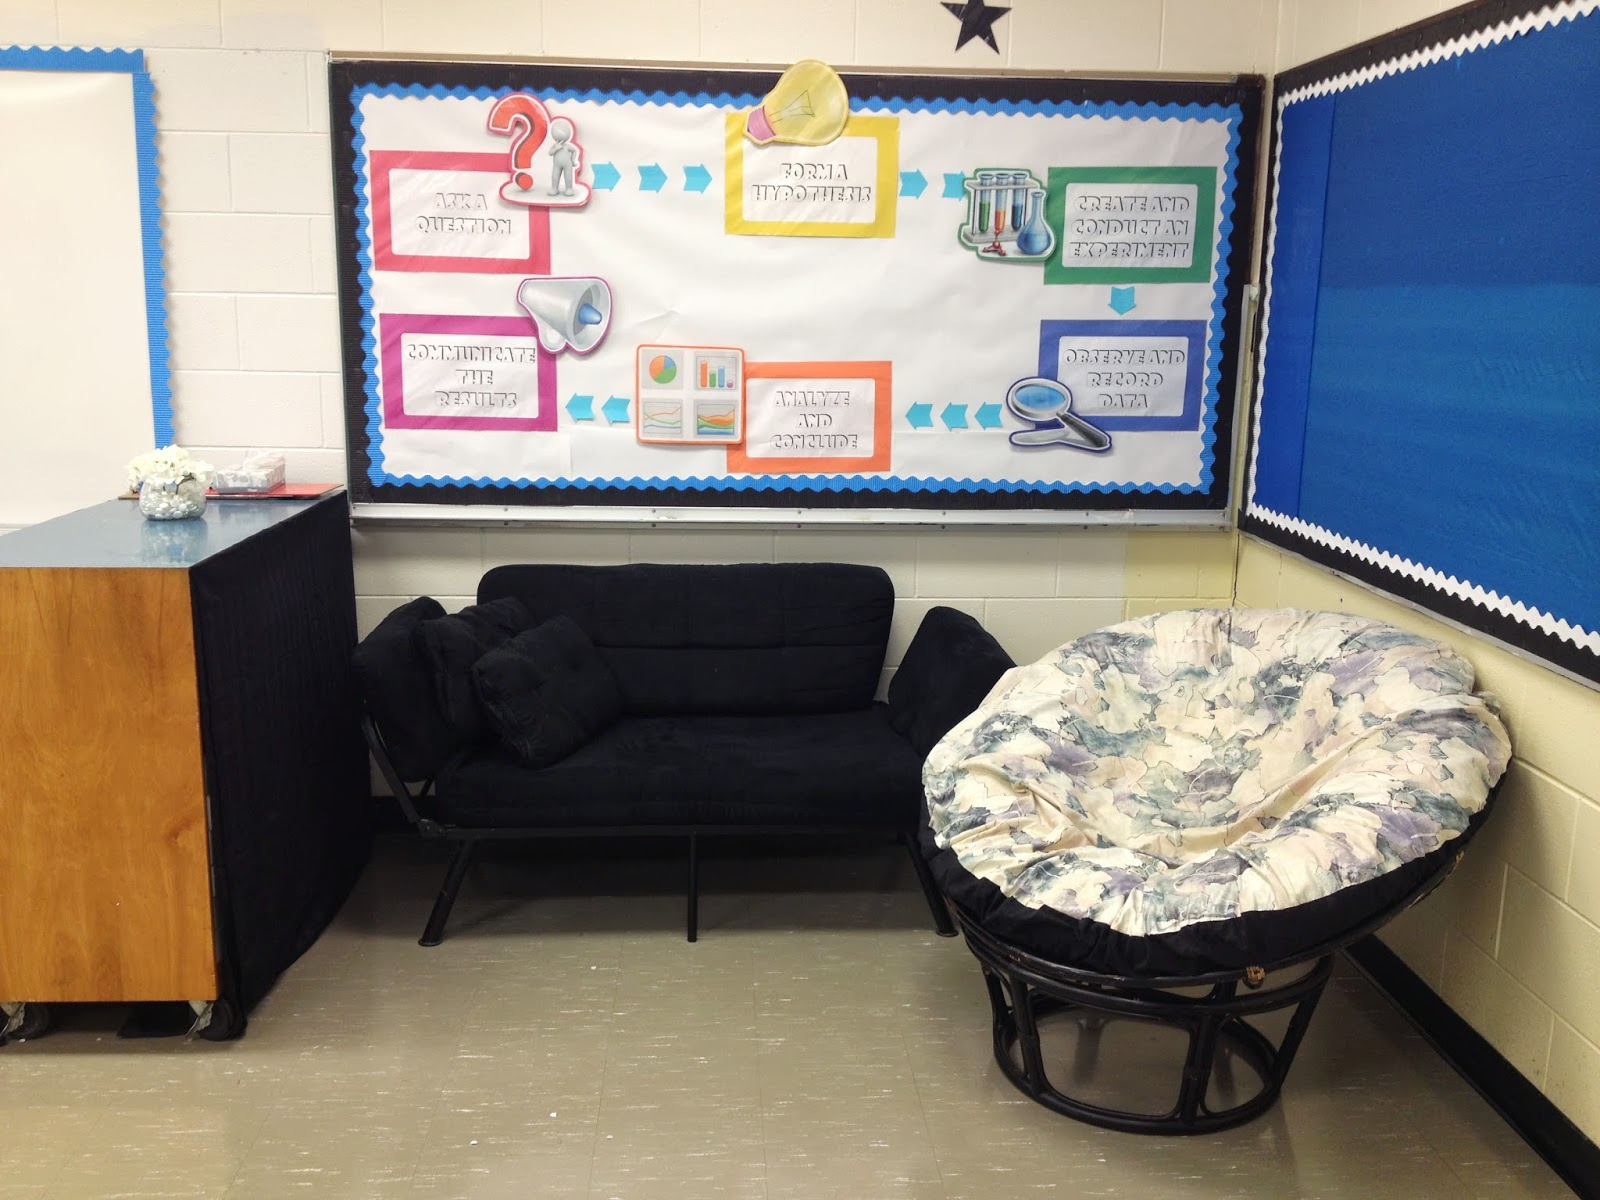 bringing in additional furniture to the classroom, couches in class